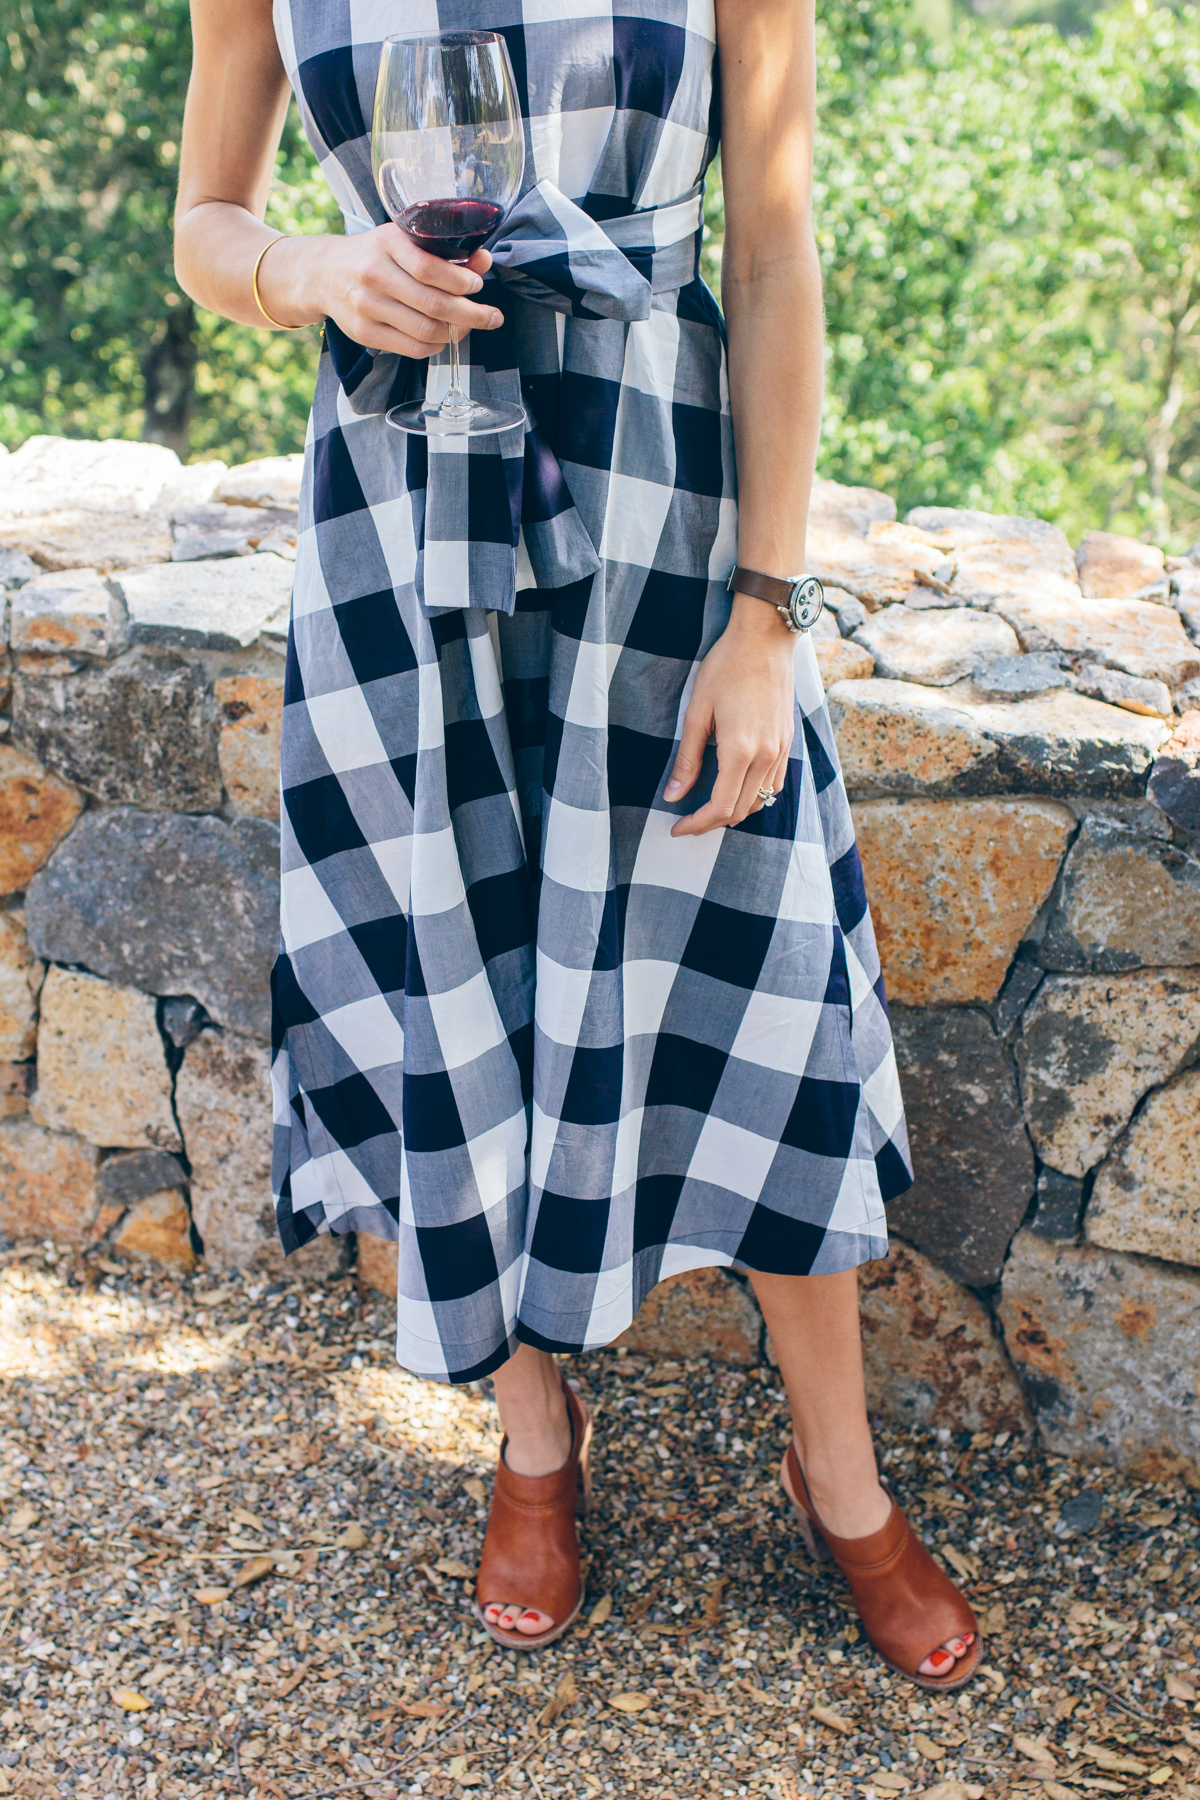 gingham dress — via @TheFoxandShe